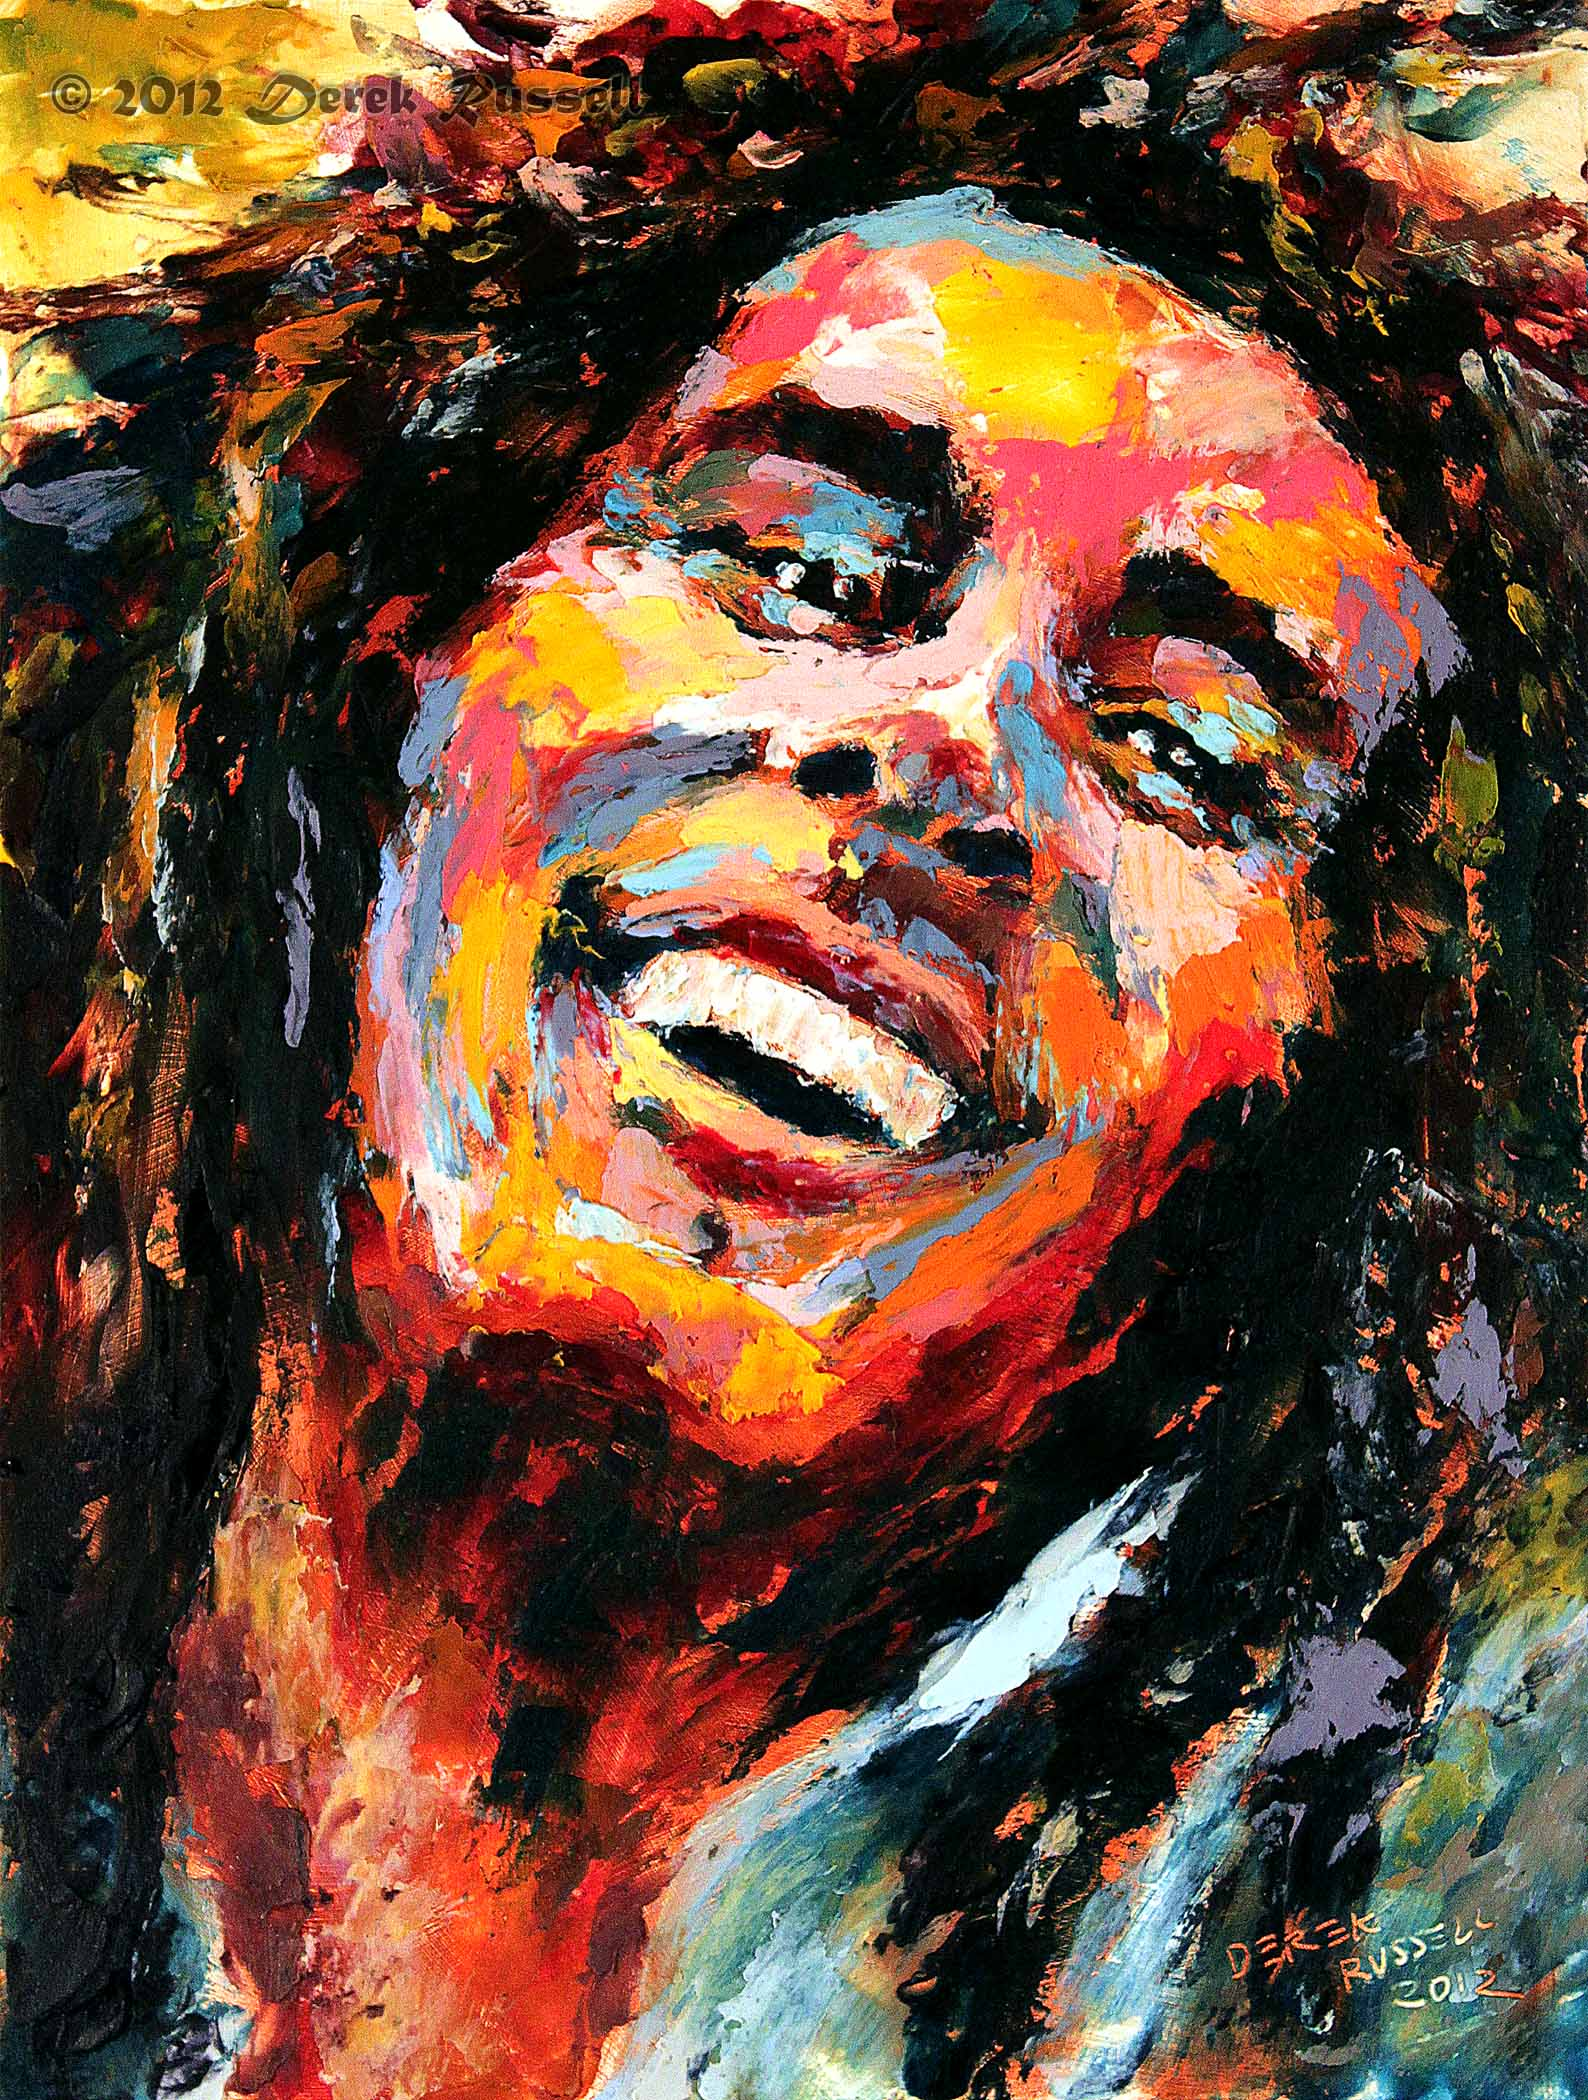 Bob Marley Original Fine Art Oil Painting by Artist Derek Russell